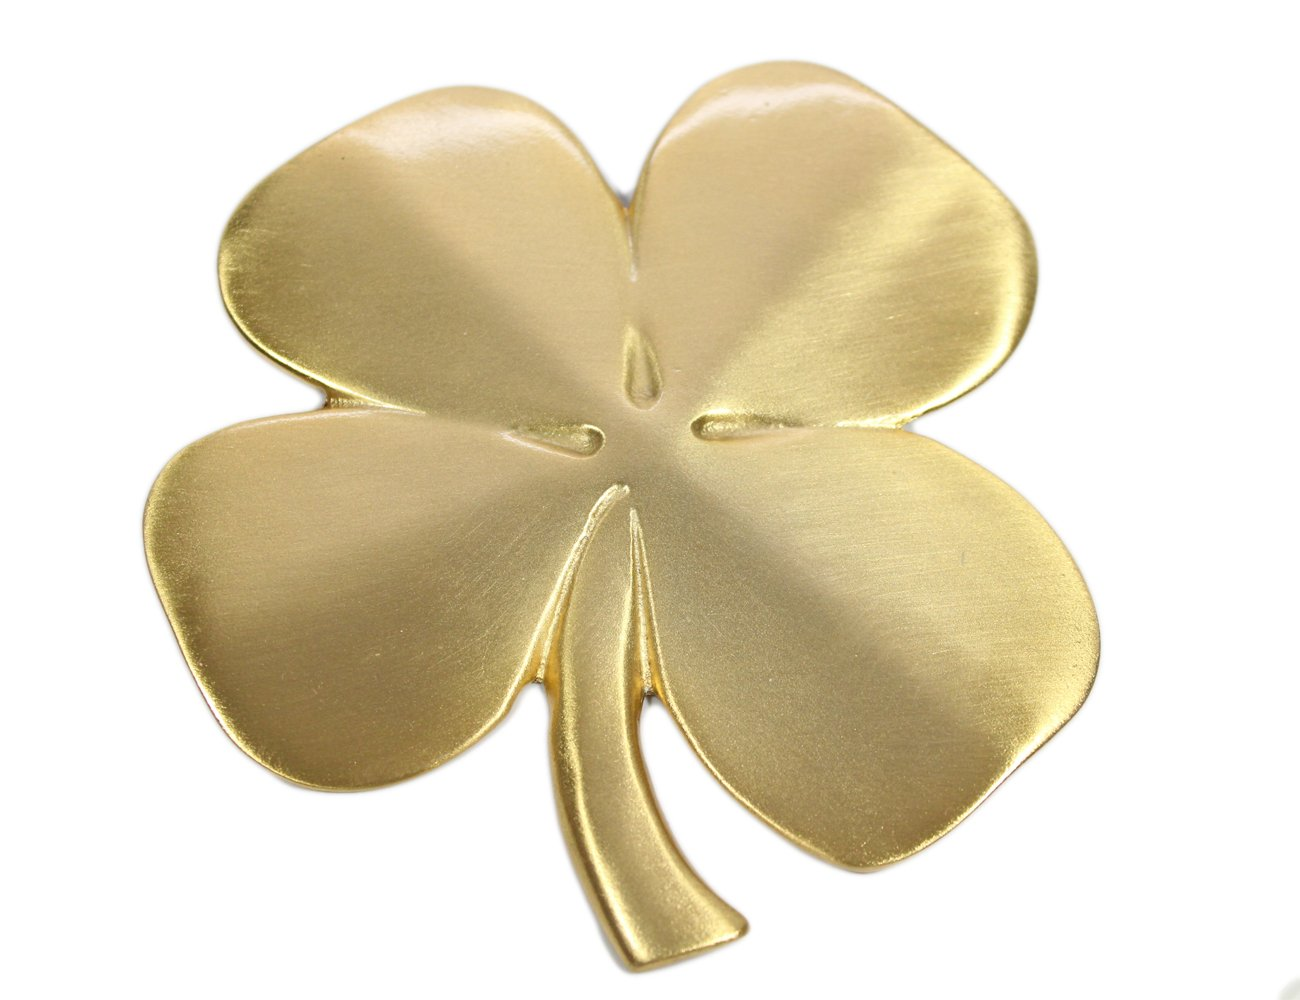 Amazon.com: Robert Emmet Co. Shamrock Wall Decor Gold Plated Pewter ...